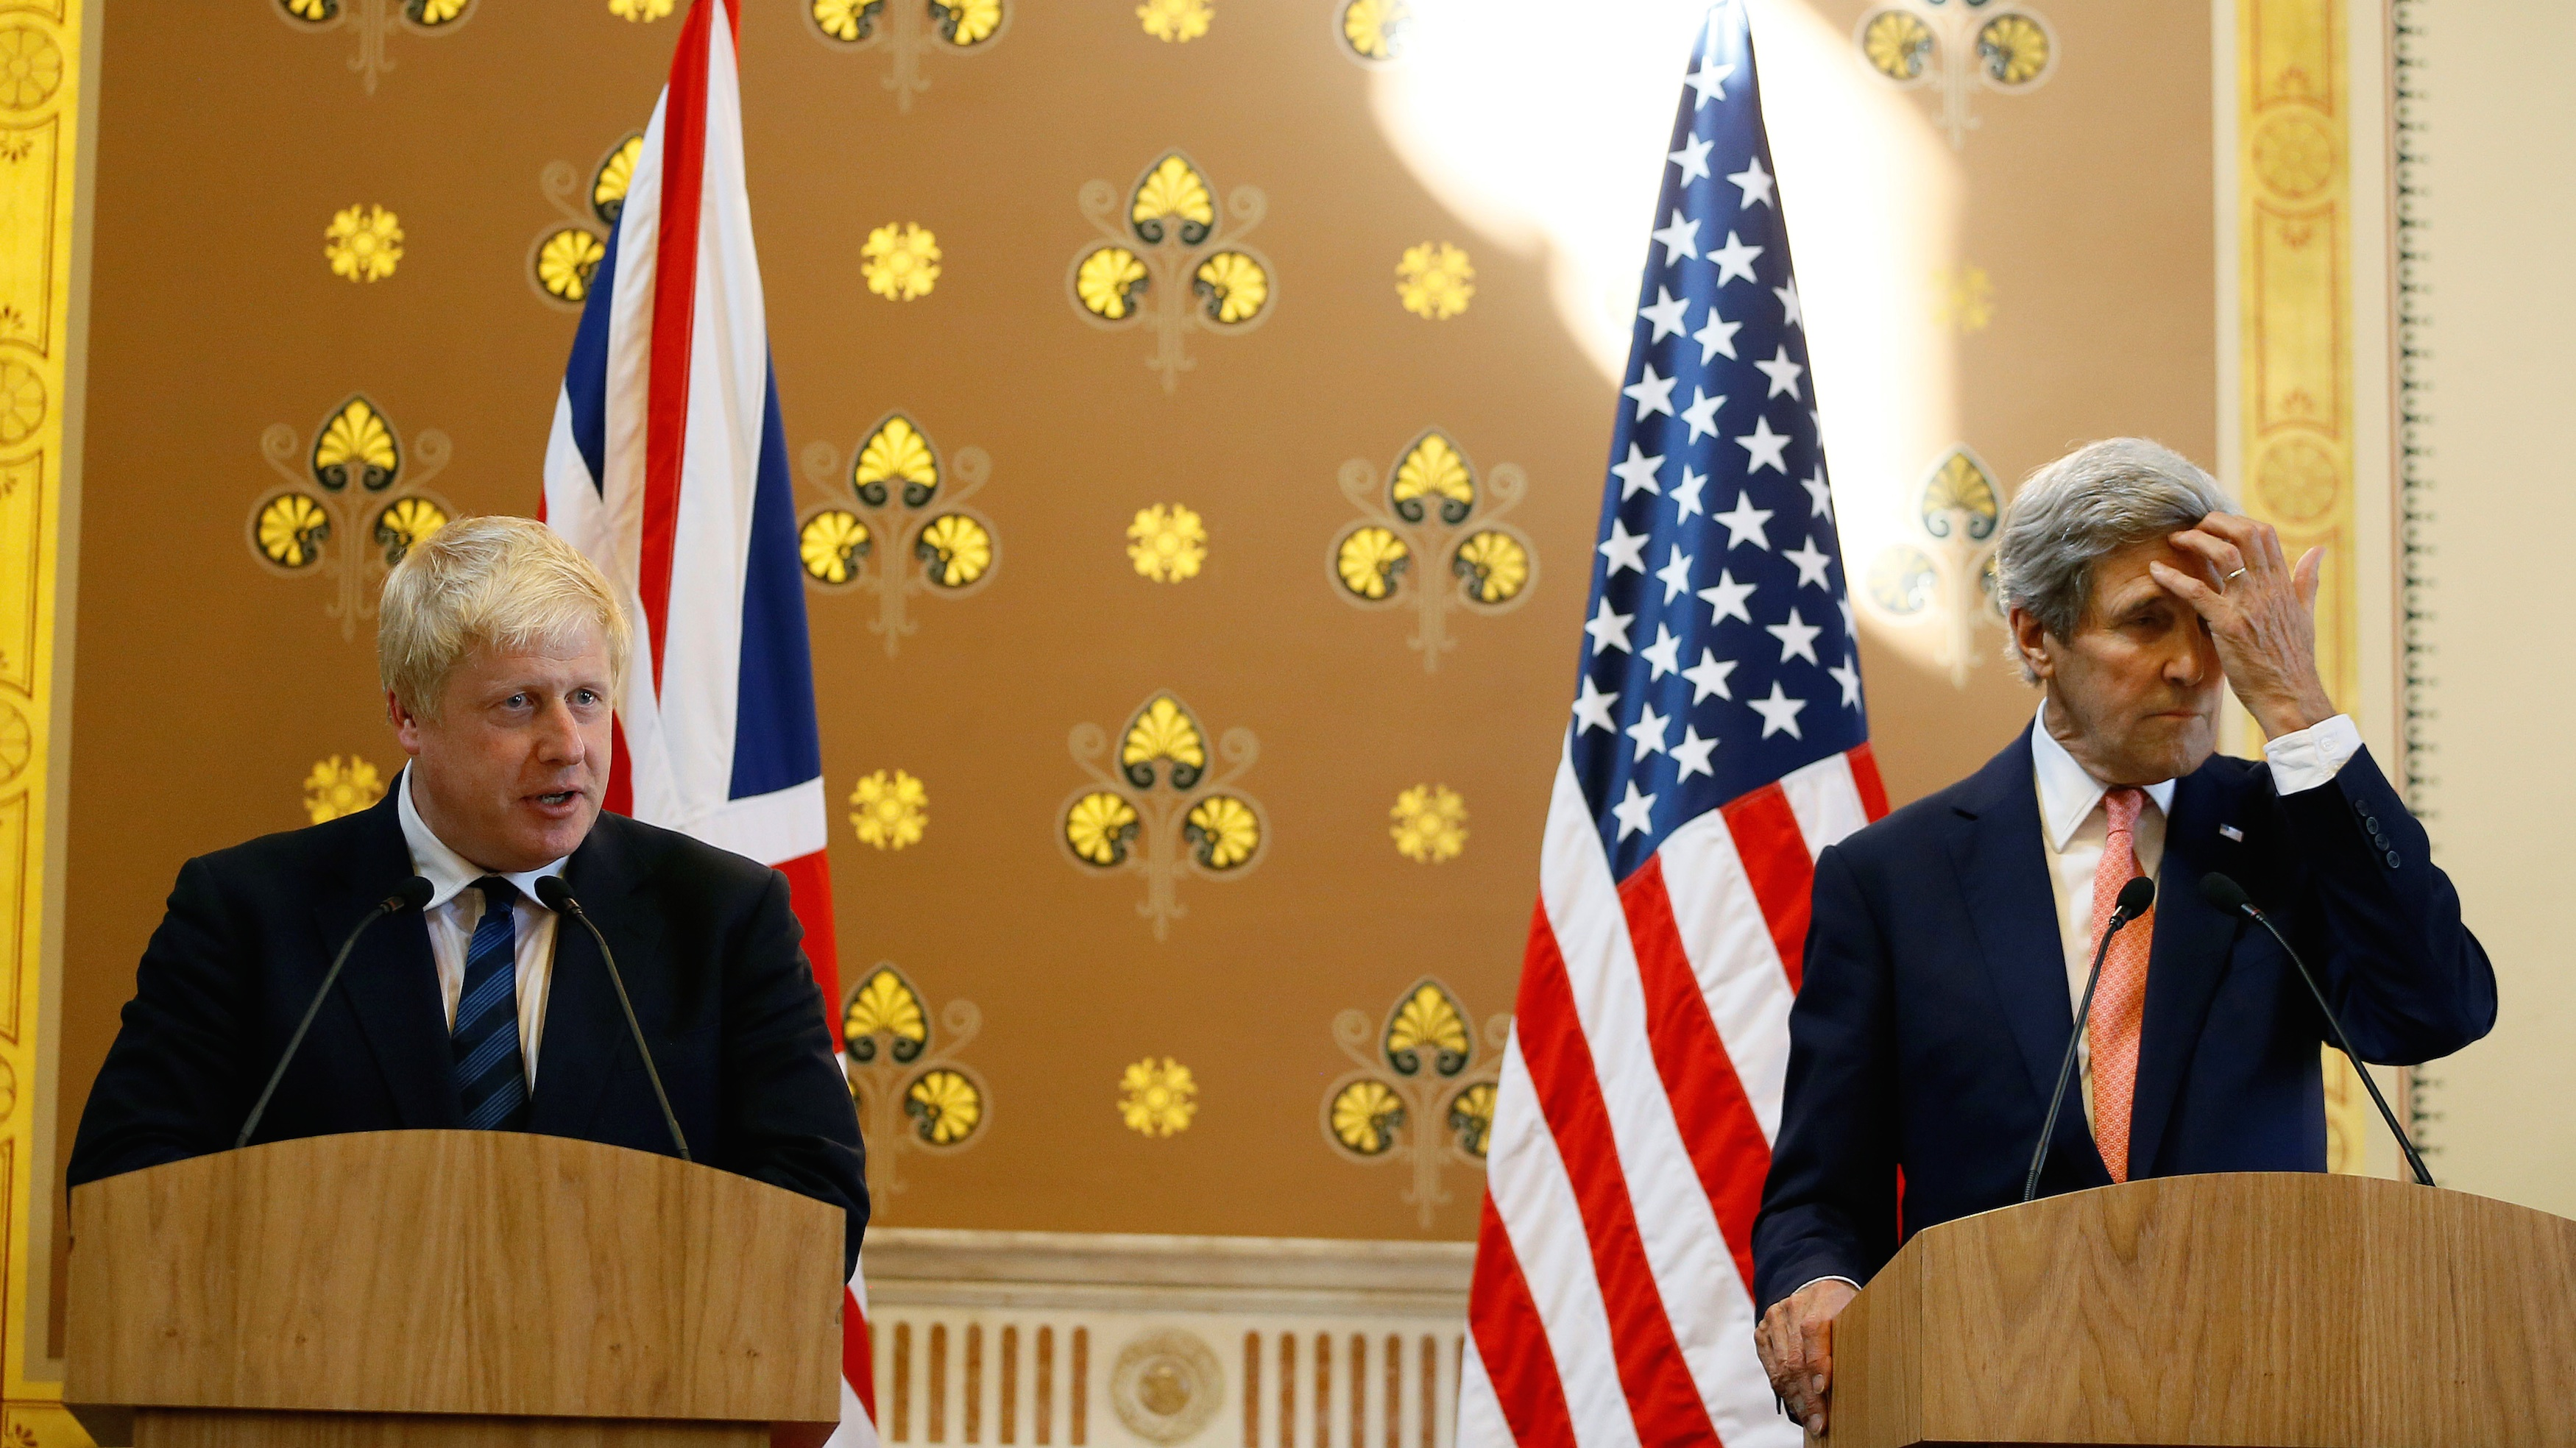 Britain's Foreign Secretary Boris Johnson, left, speaks during a press conference with U.S. Secretary of State John Kerry at the Foreign Office in London.